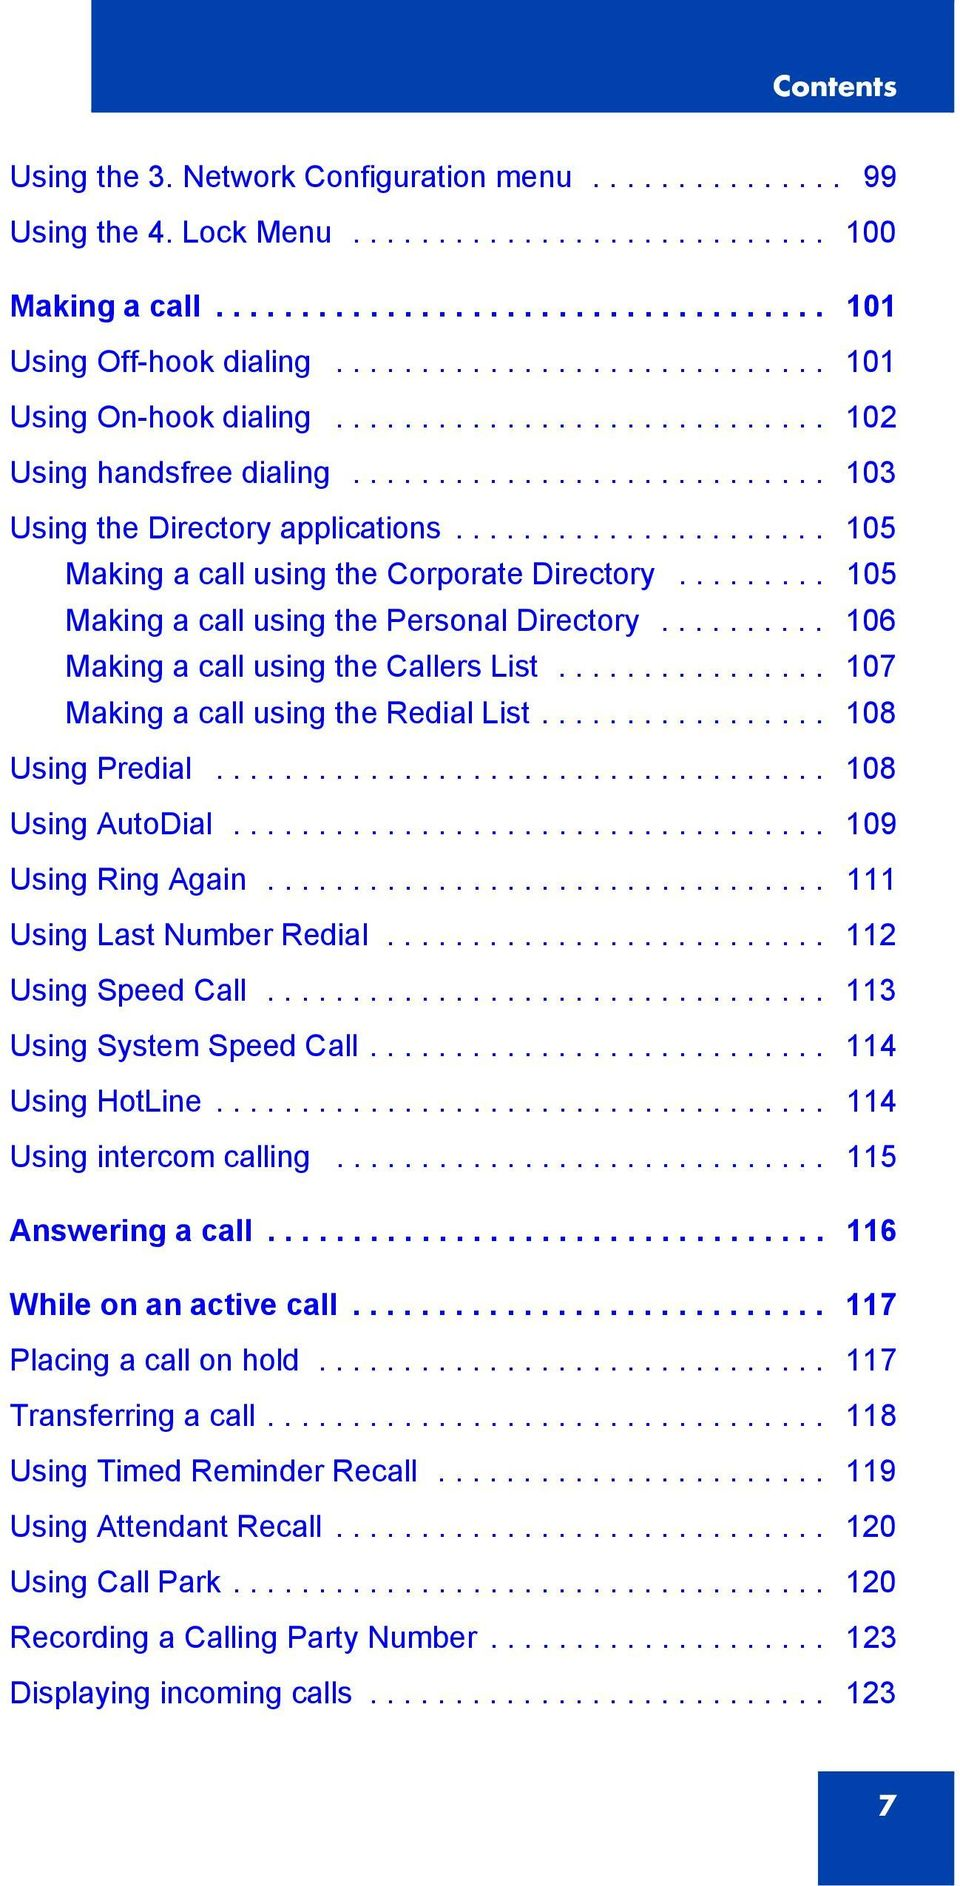 ..................... 105 Making a call using the Corporate Directory......... 105 Making a call using the Personal Directory.......... 106 Making a call using the Callers List.